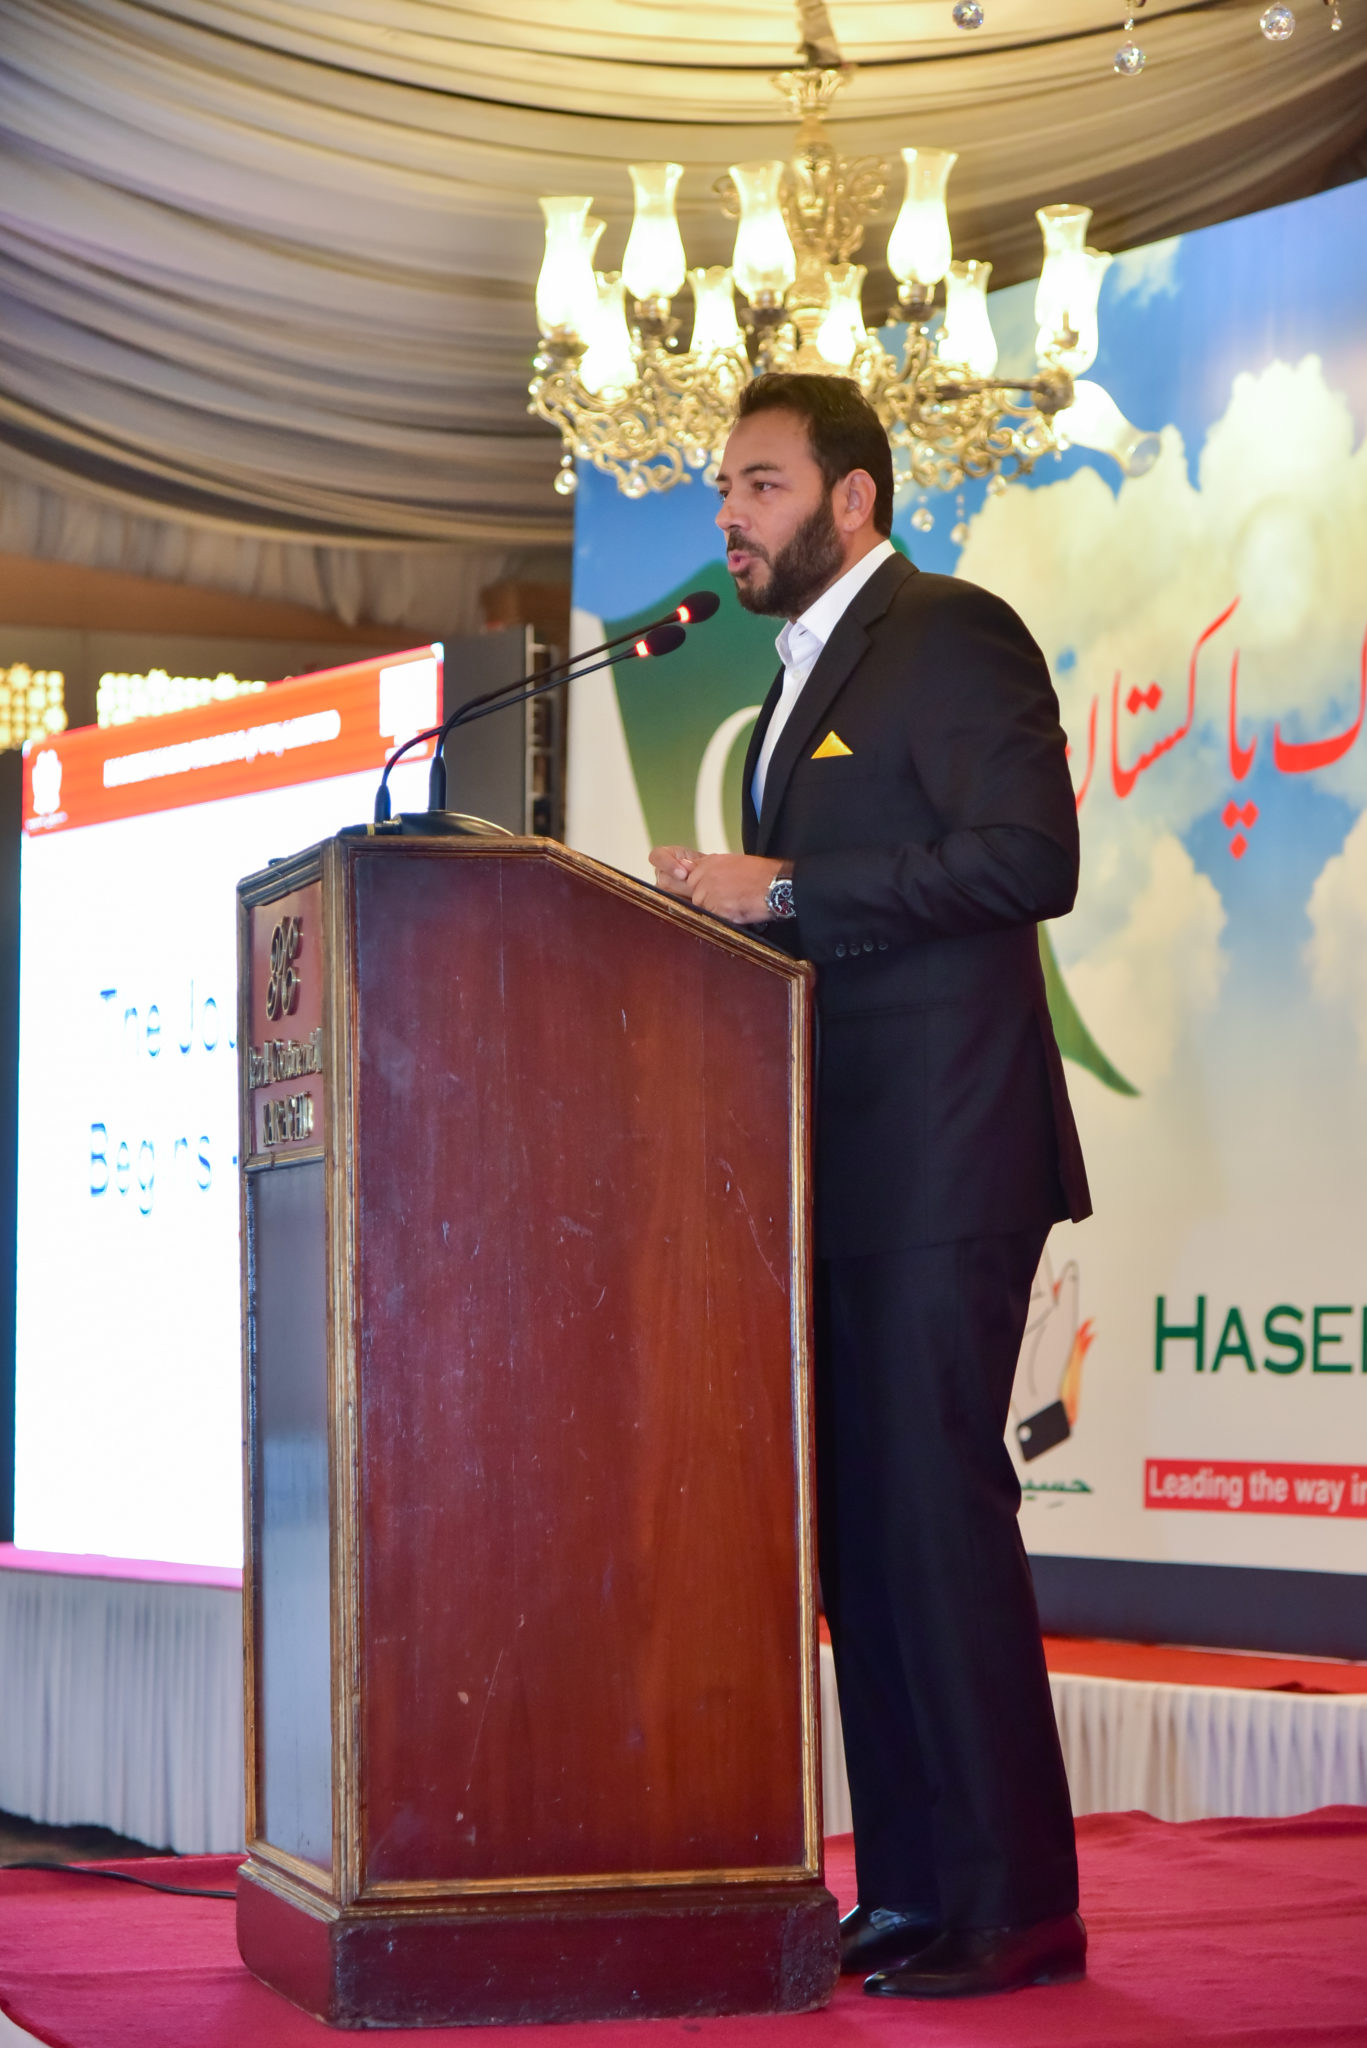 Mr Fawad Barry appointed as new CEO of Haseen Habib Trading (Pvt) Limited